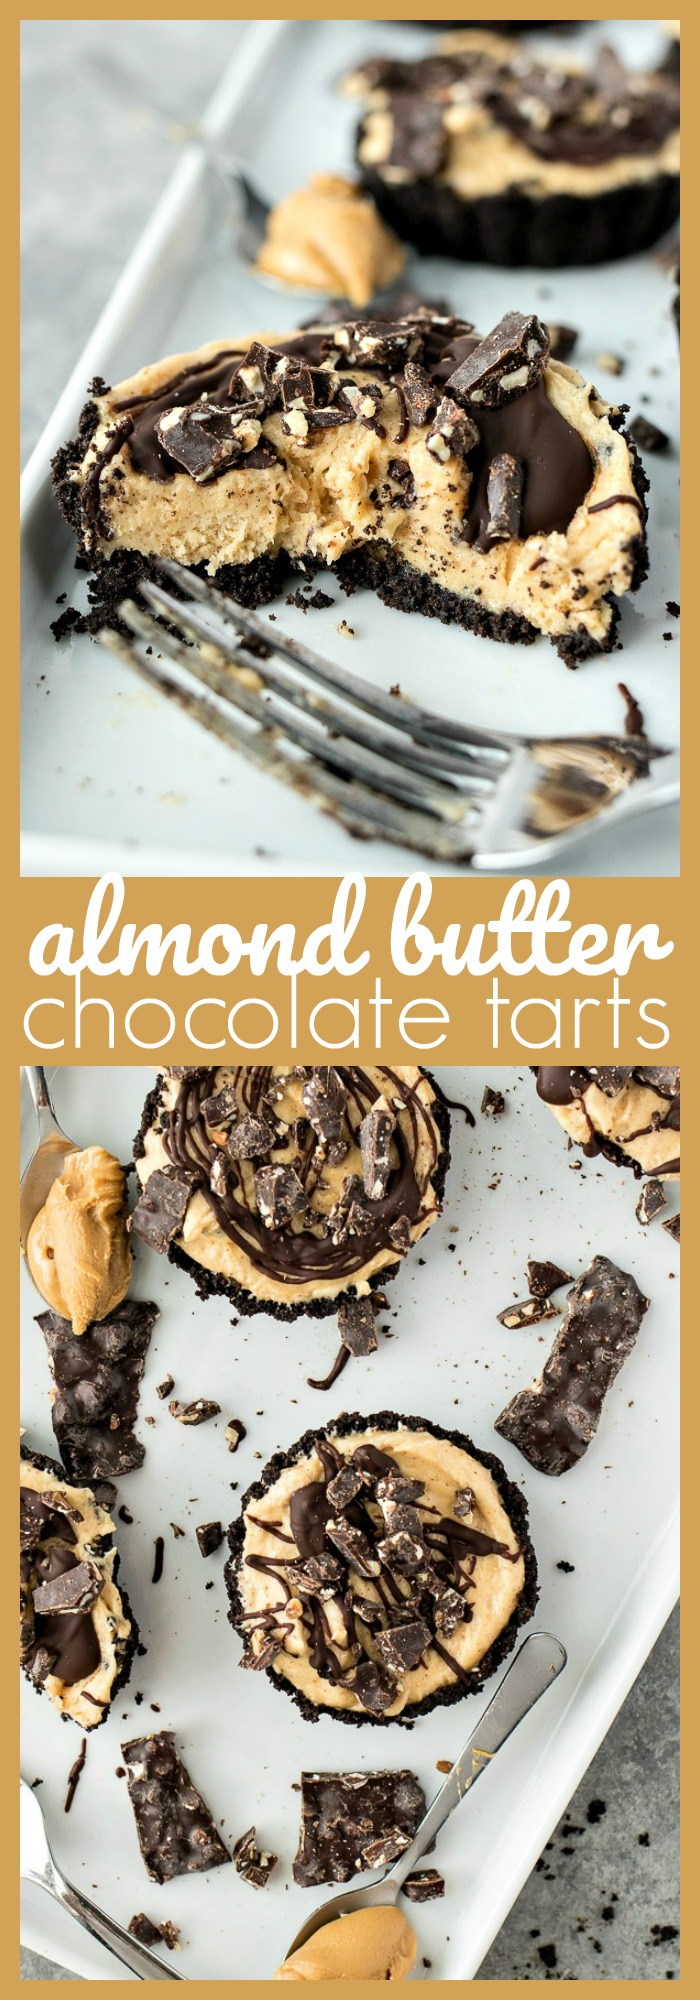 Almond Butter Chocolate Tarts photo collage